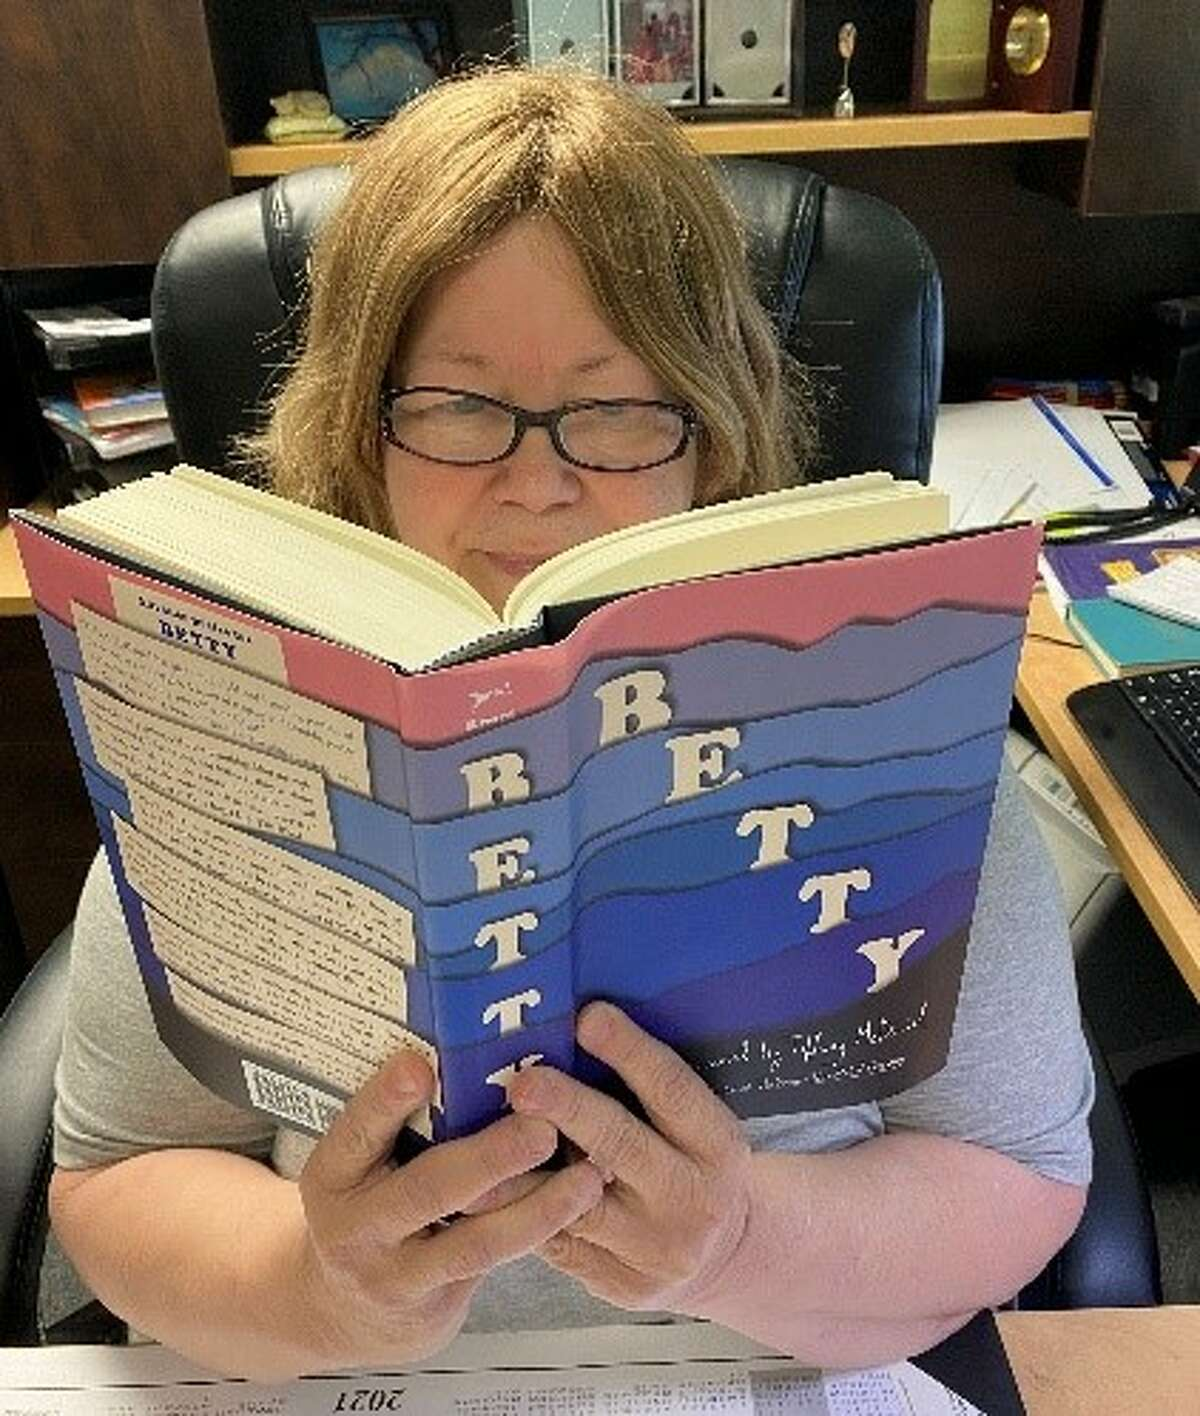 The City of Plainview Unger Memorial Chief Librarian Cynthia Peterson was chosen to serve as the Vice-Chair of the Texas Library Association Lariat Committee.